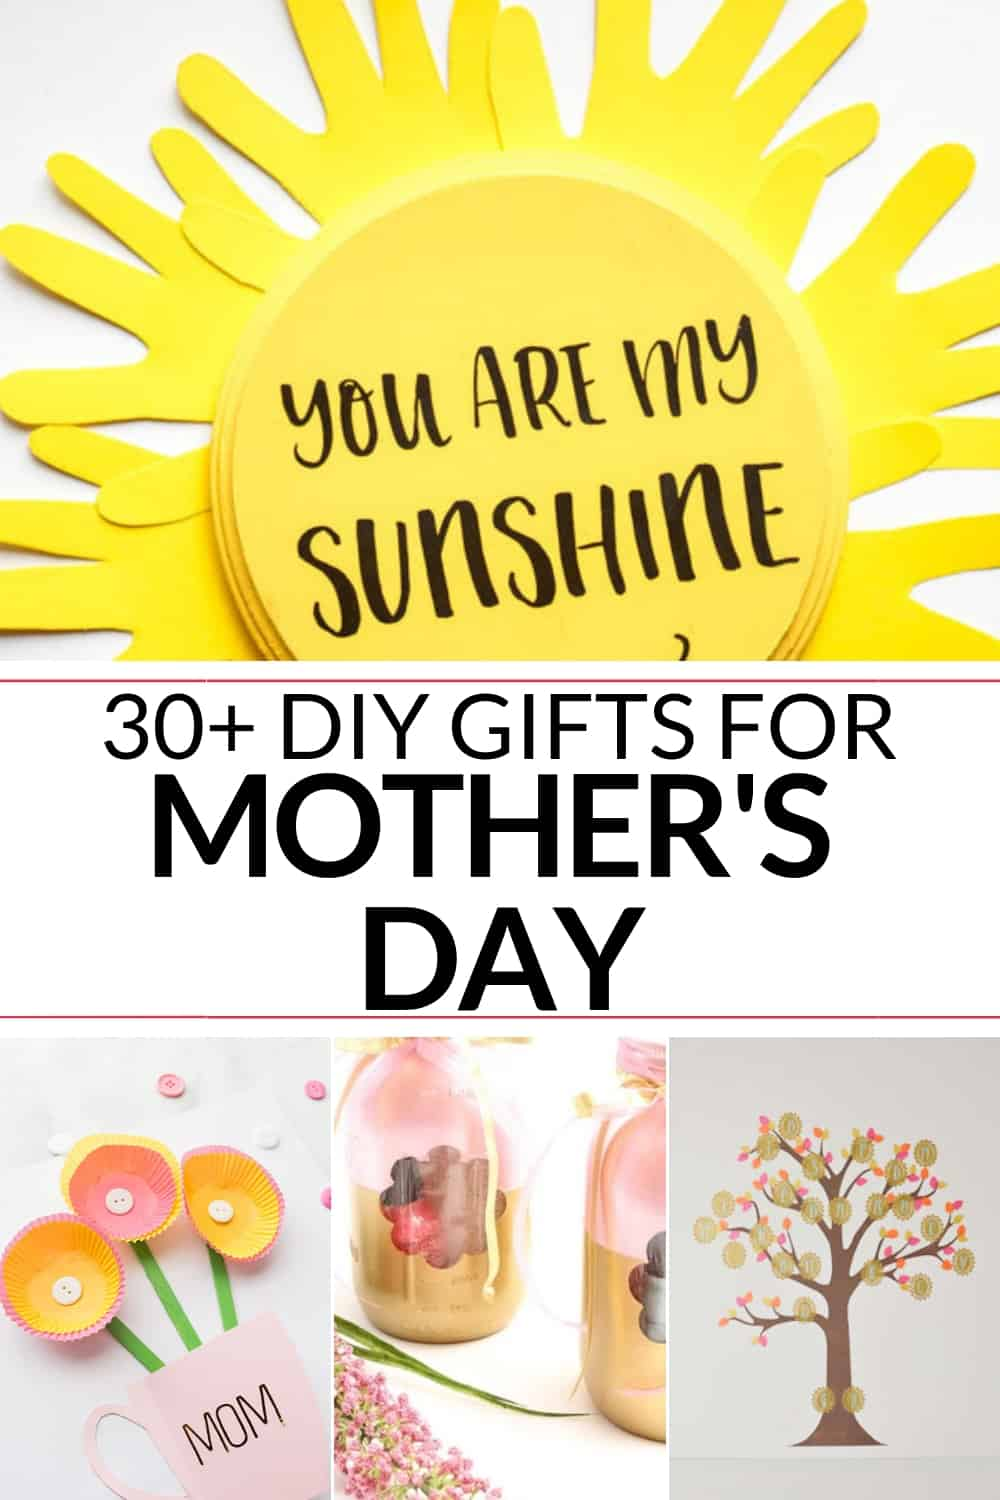 COLLECTION OF MOTHERS DAY CRAFTS FOR KIDS